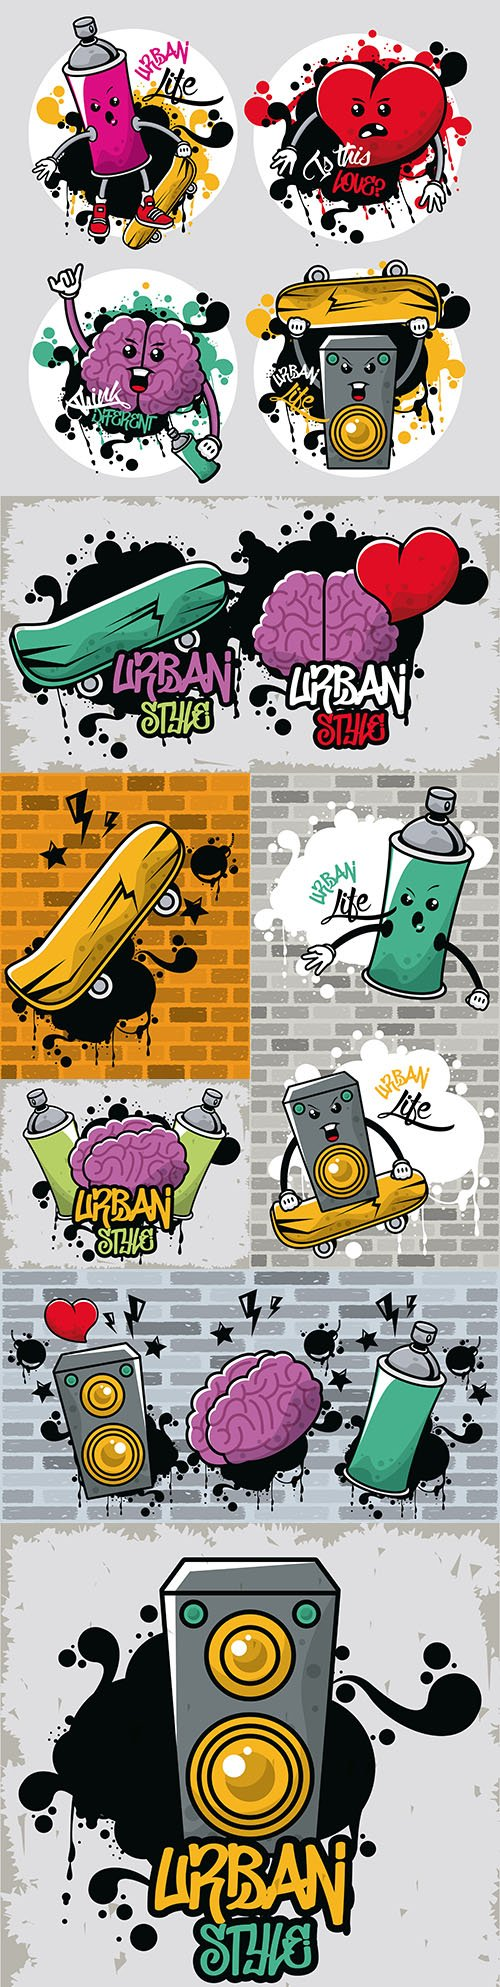 Urban style graffiti with skateboarding and brain